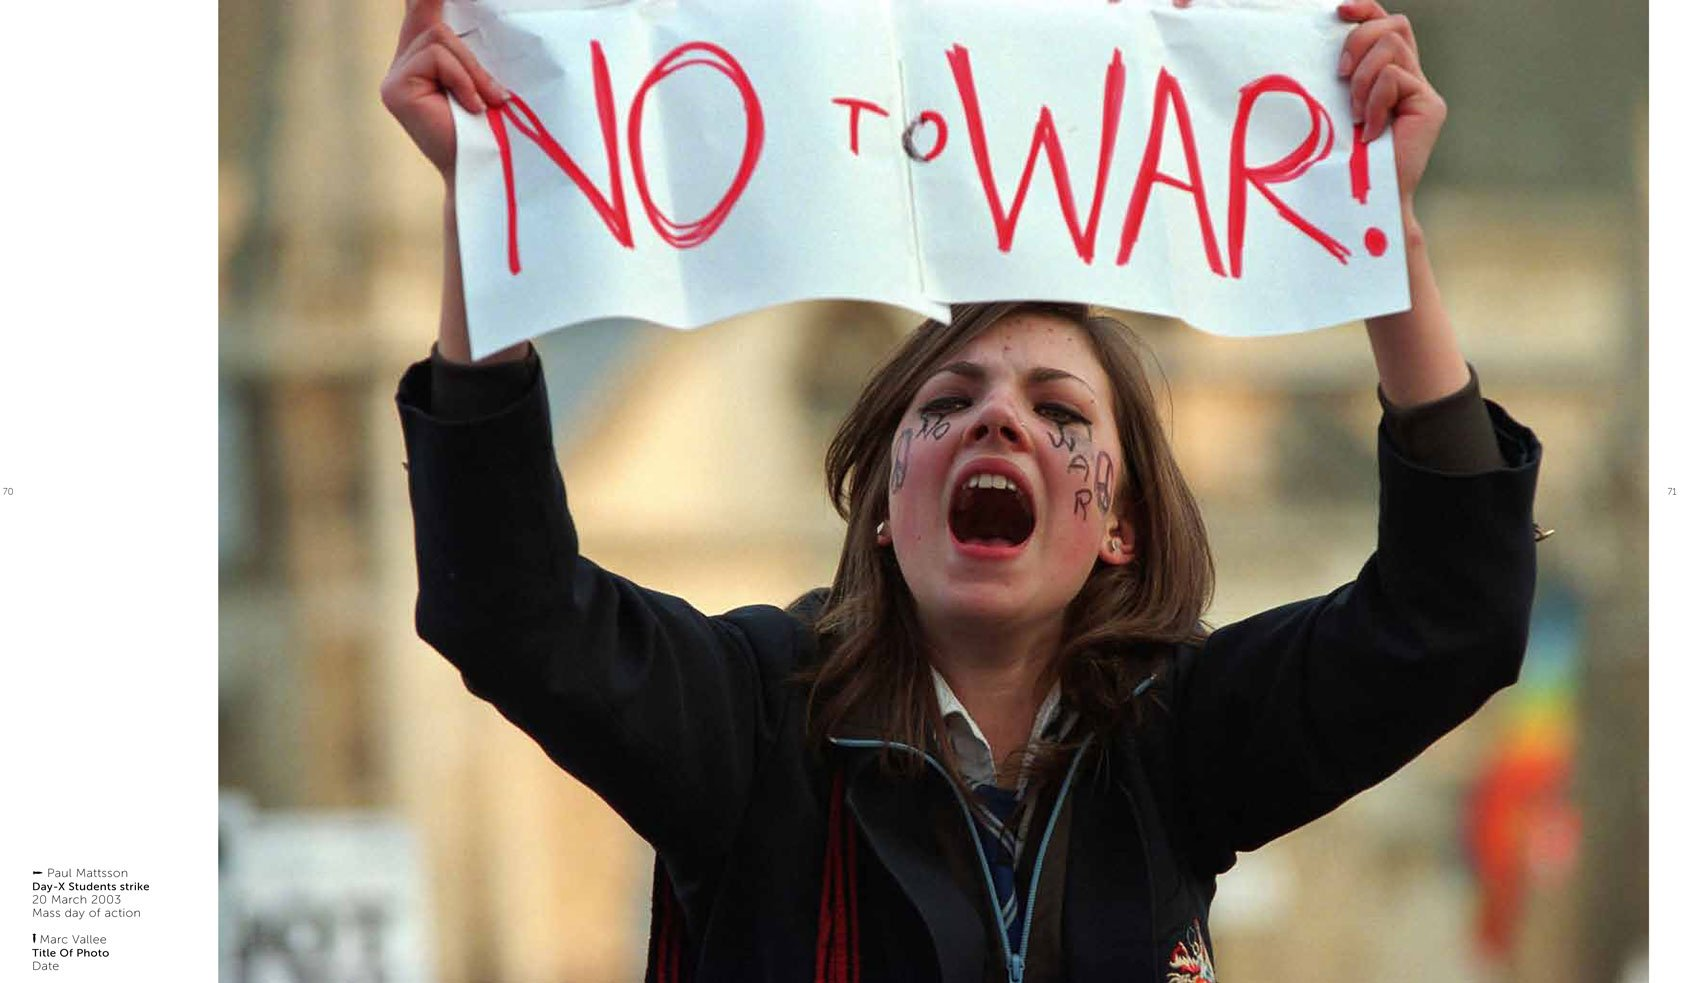 Stop the War Photograph